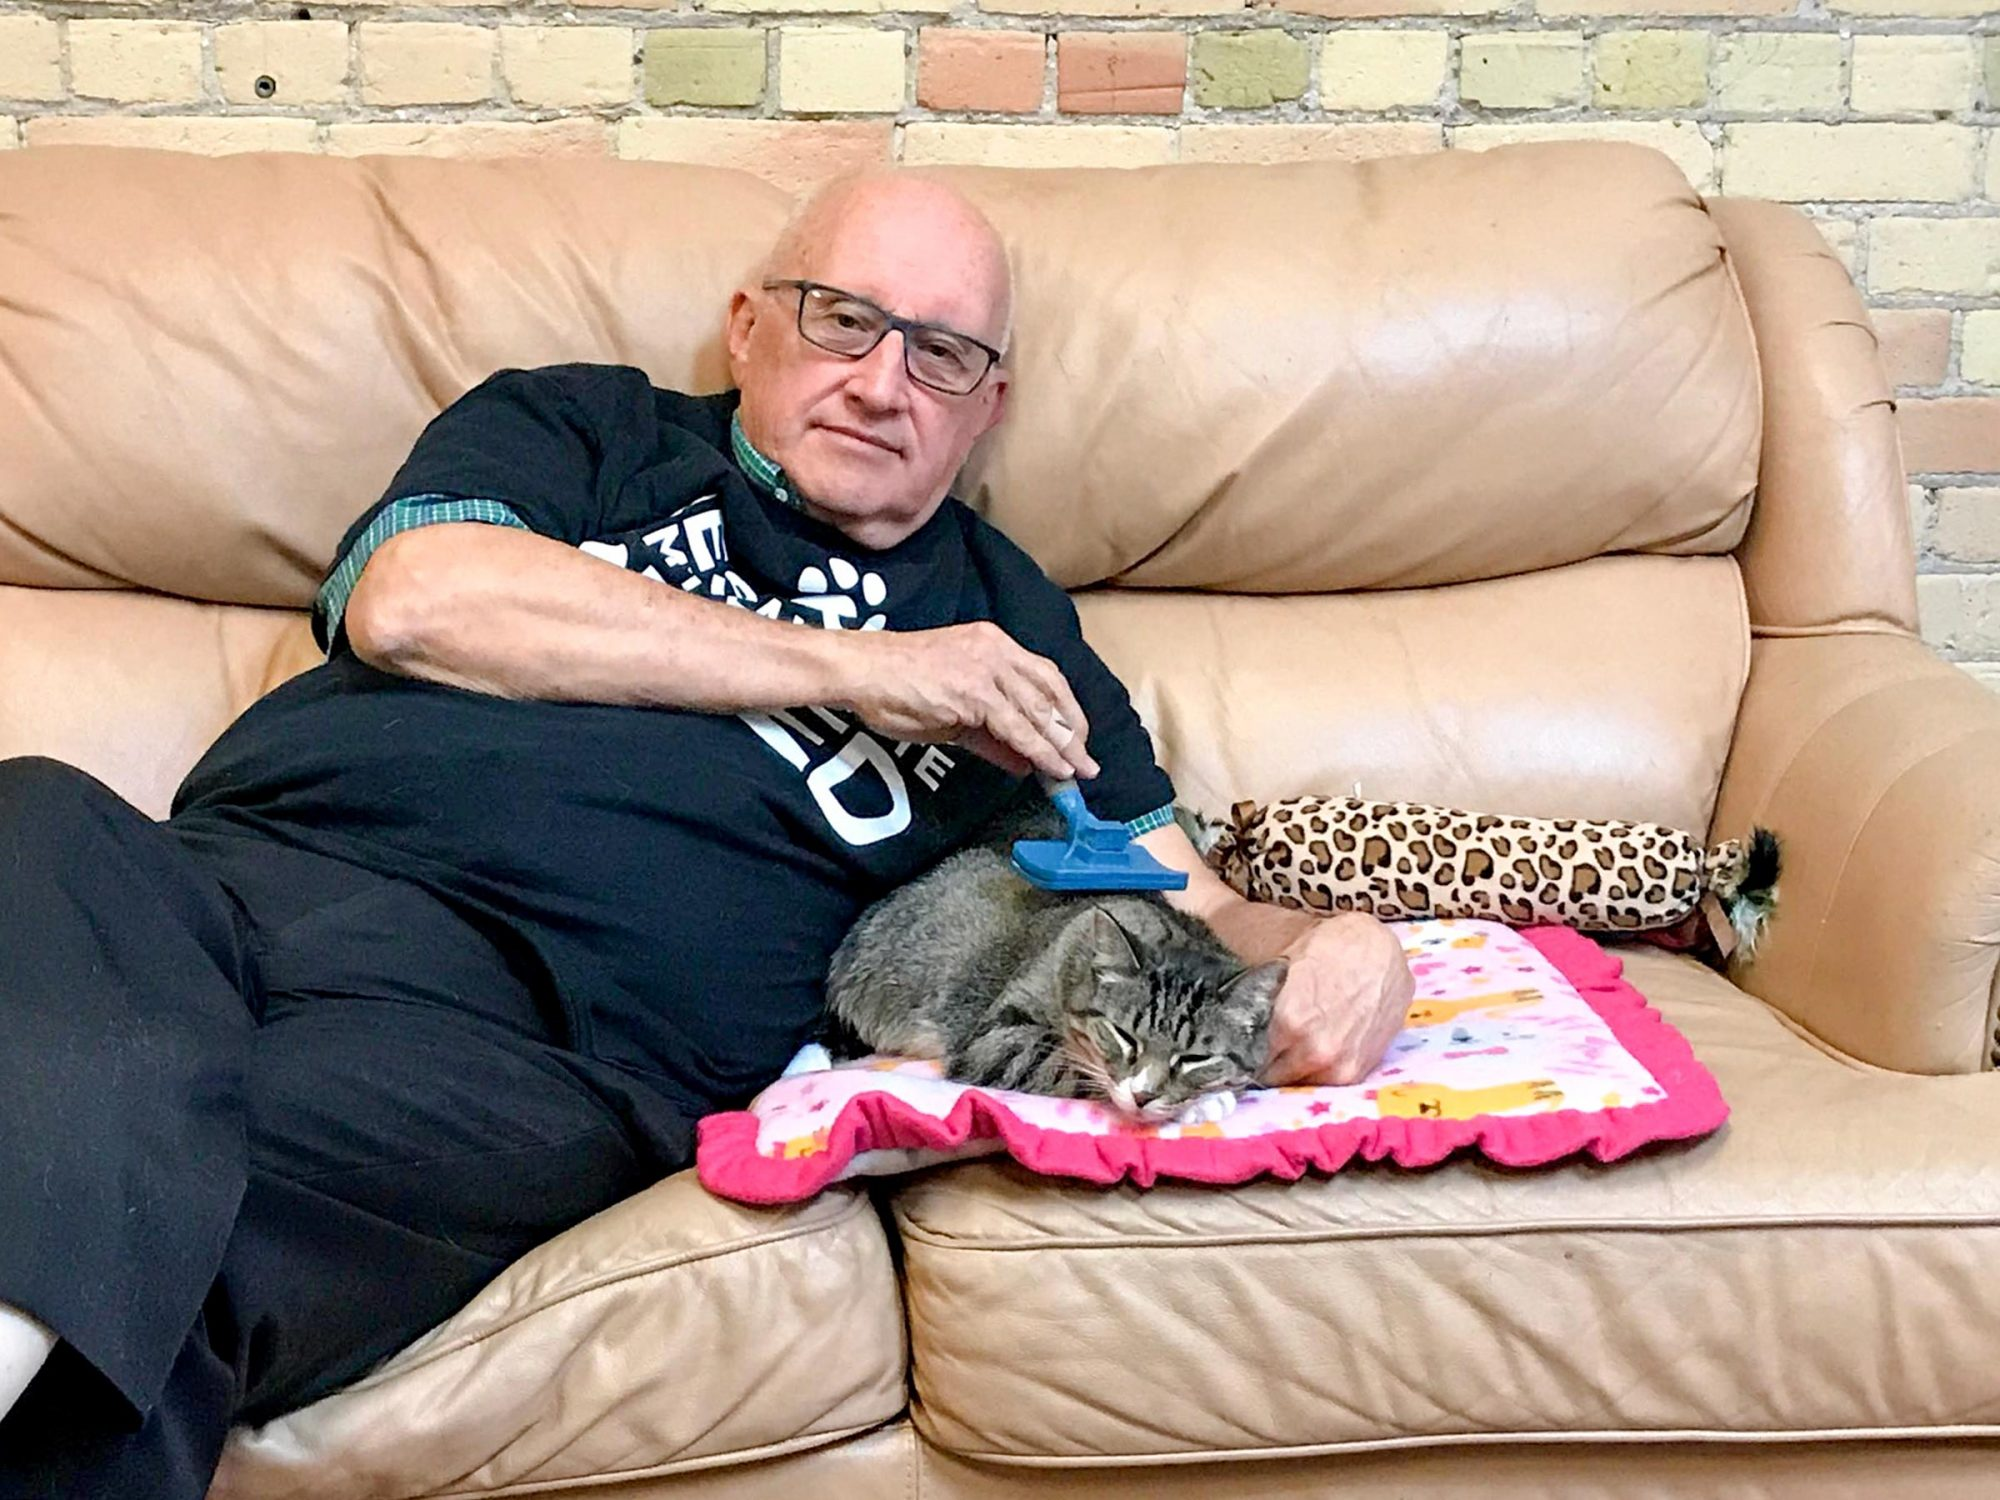 Volunteer cuddles and falls asleep with catsCourtesy Safe Haven Pet Sanctuary